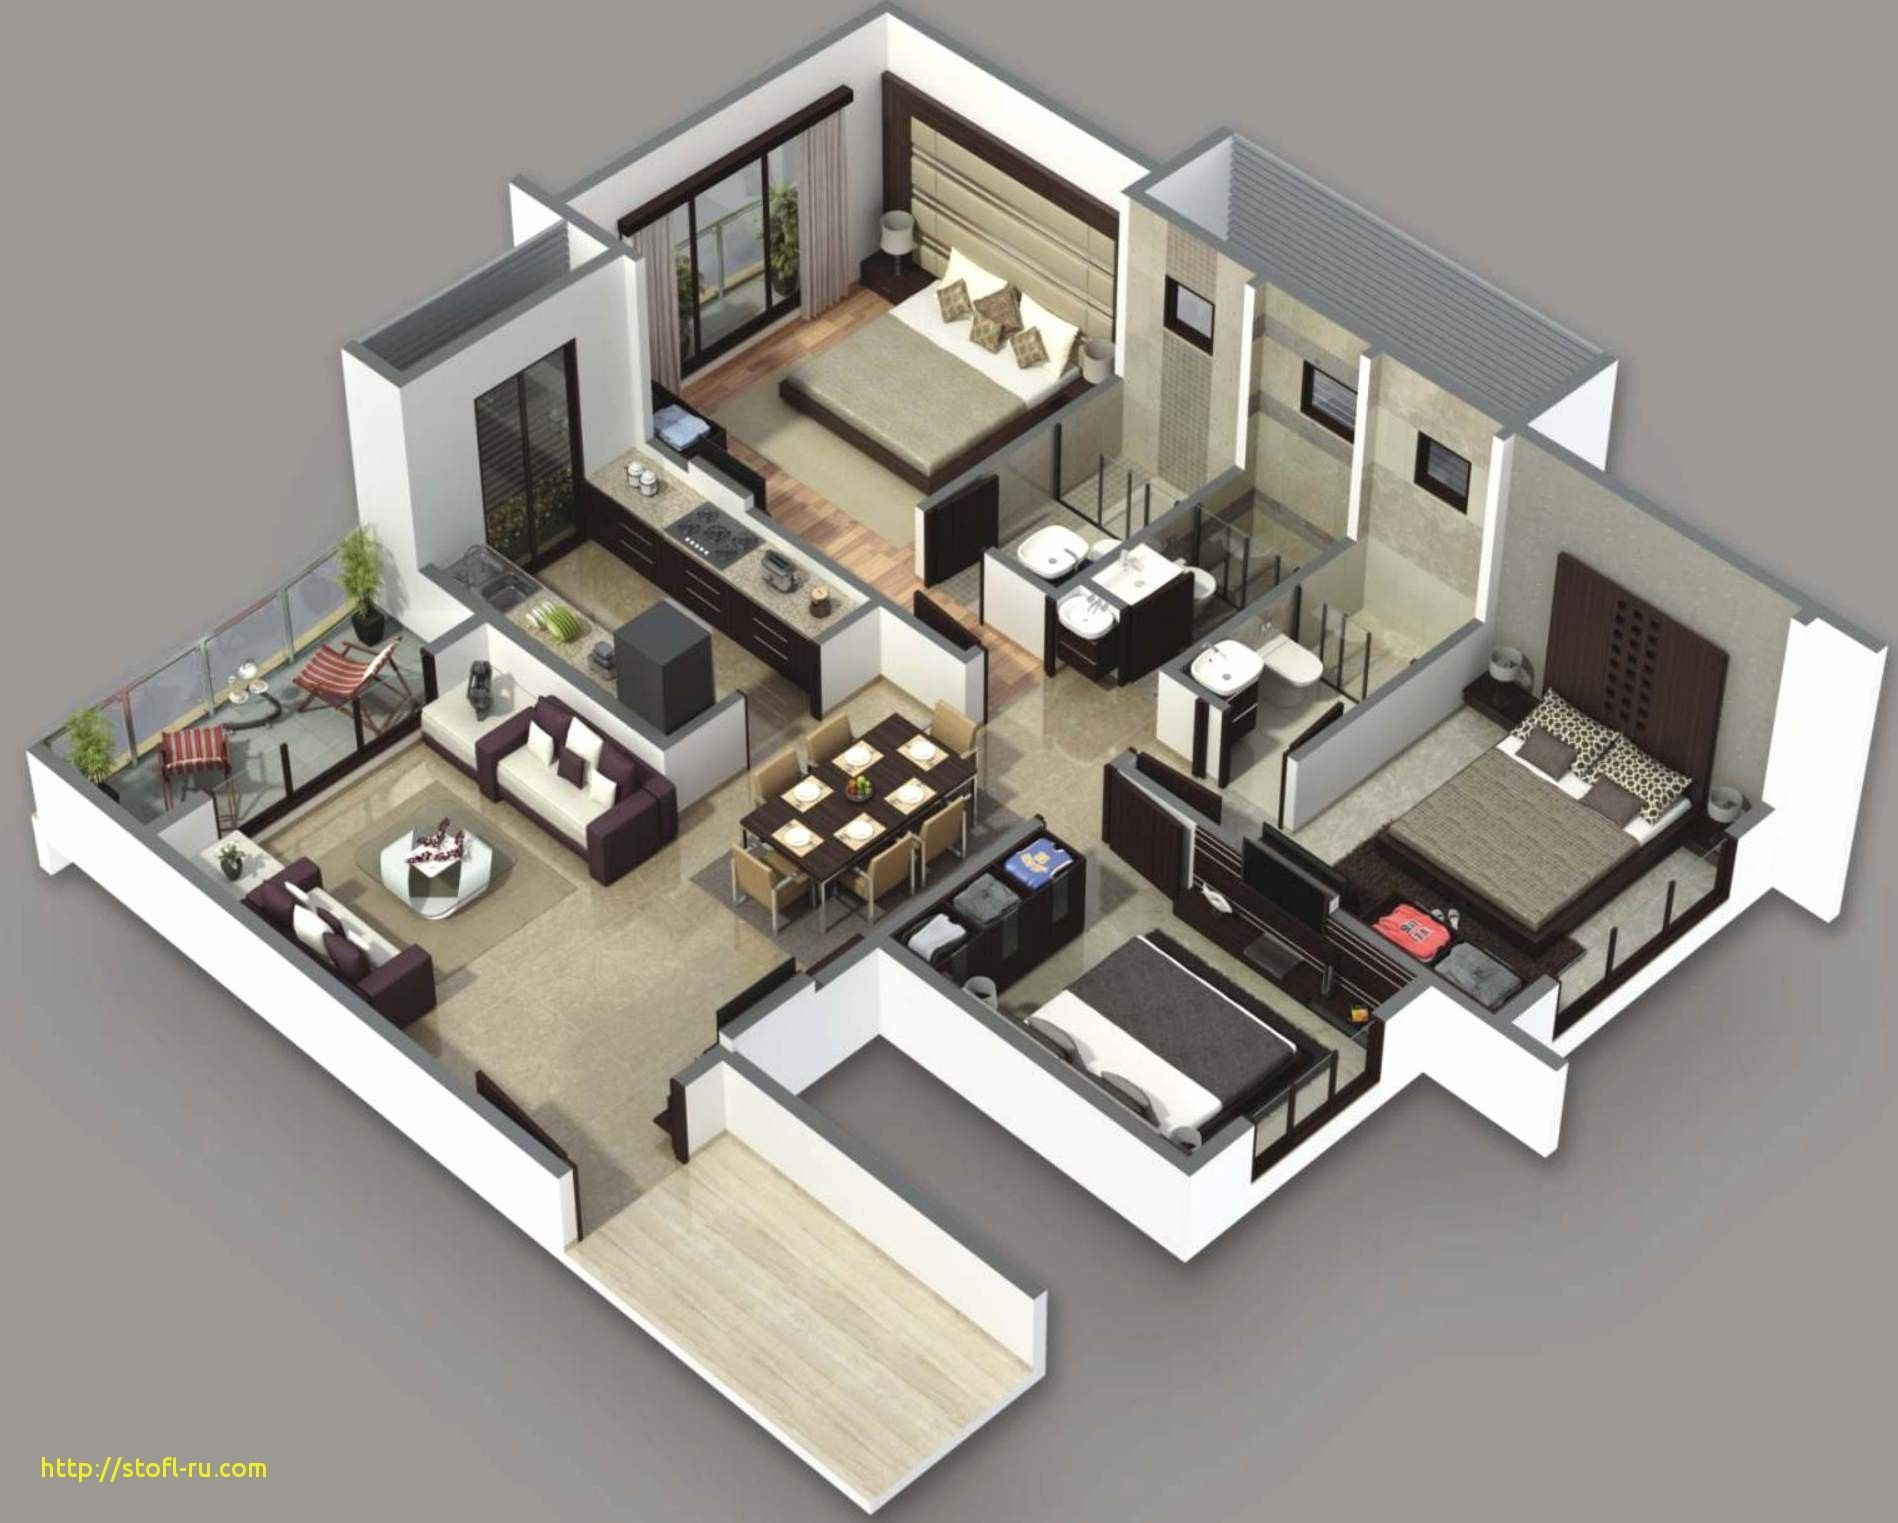 Modern Small House Plans Under 1500 Sq Ft Modern Style House Design Ideas Smallhouseplans House Moder Simple House Plans 3d House Plans House Floor Plans